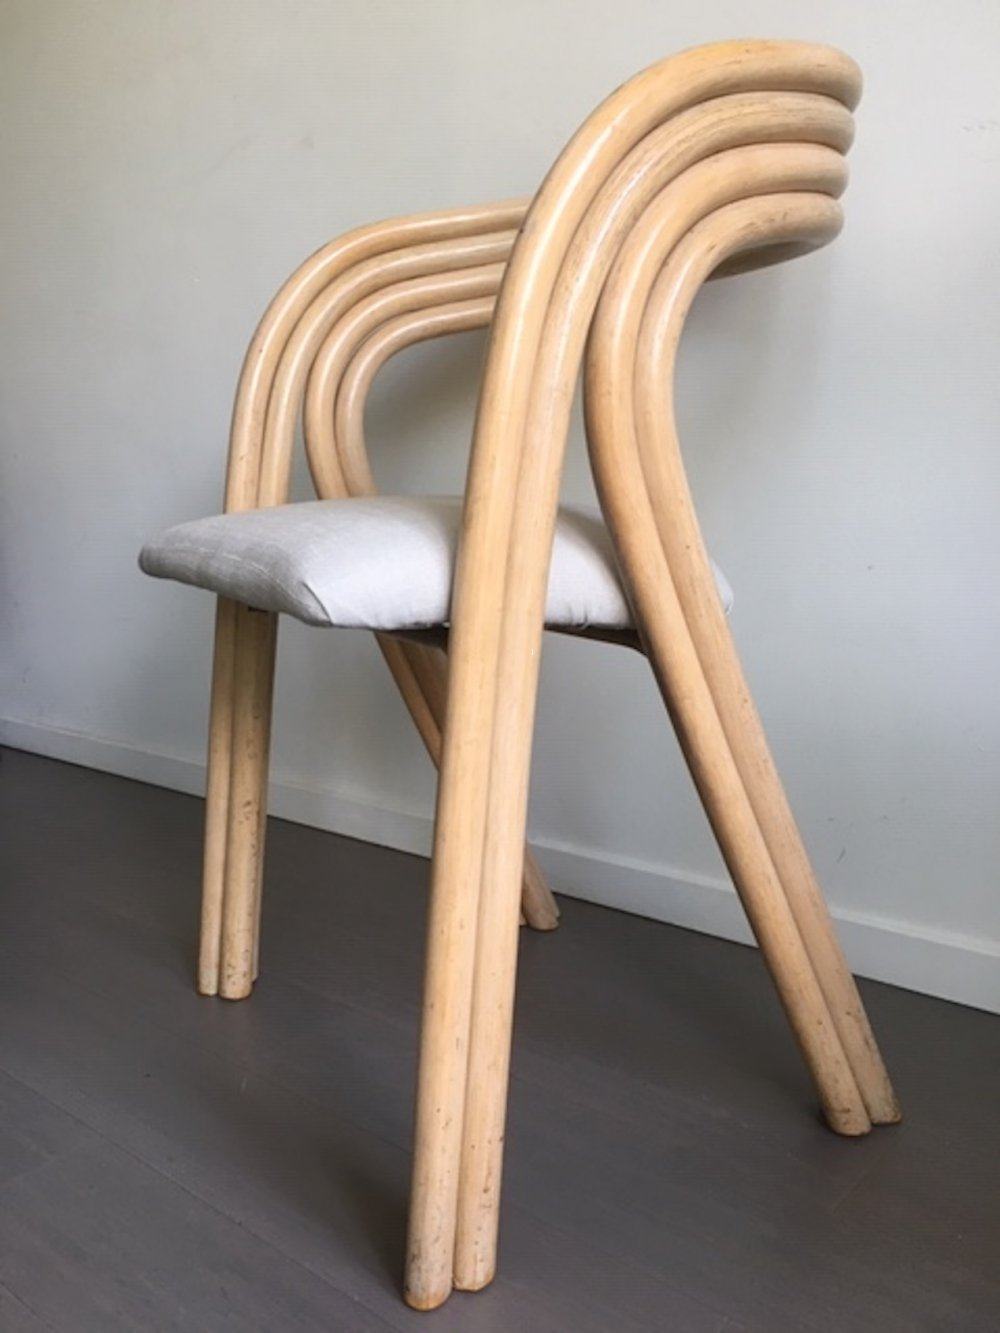 Set of 4 dining chairs by Axel Enthoven for Rohé Noordwolde, 1970s